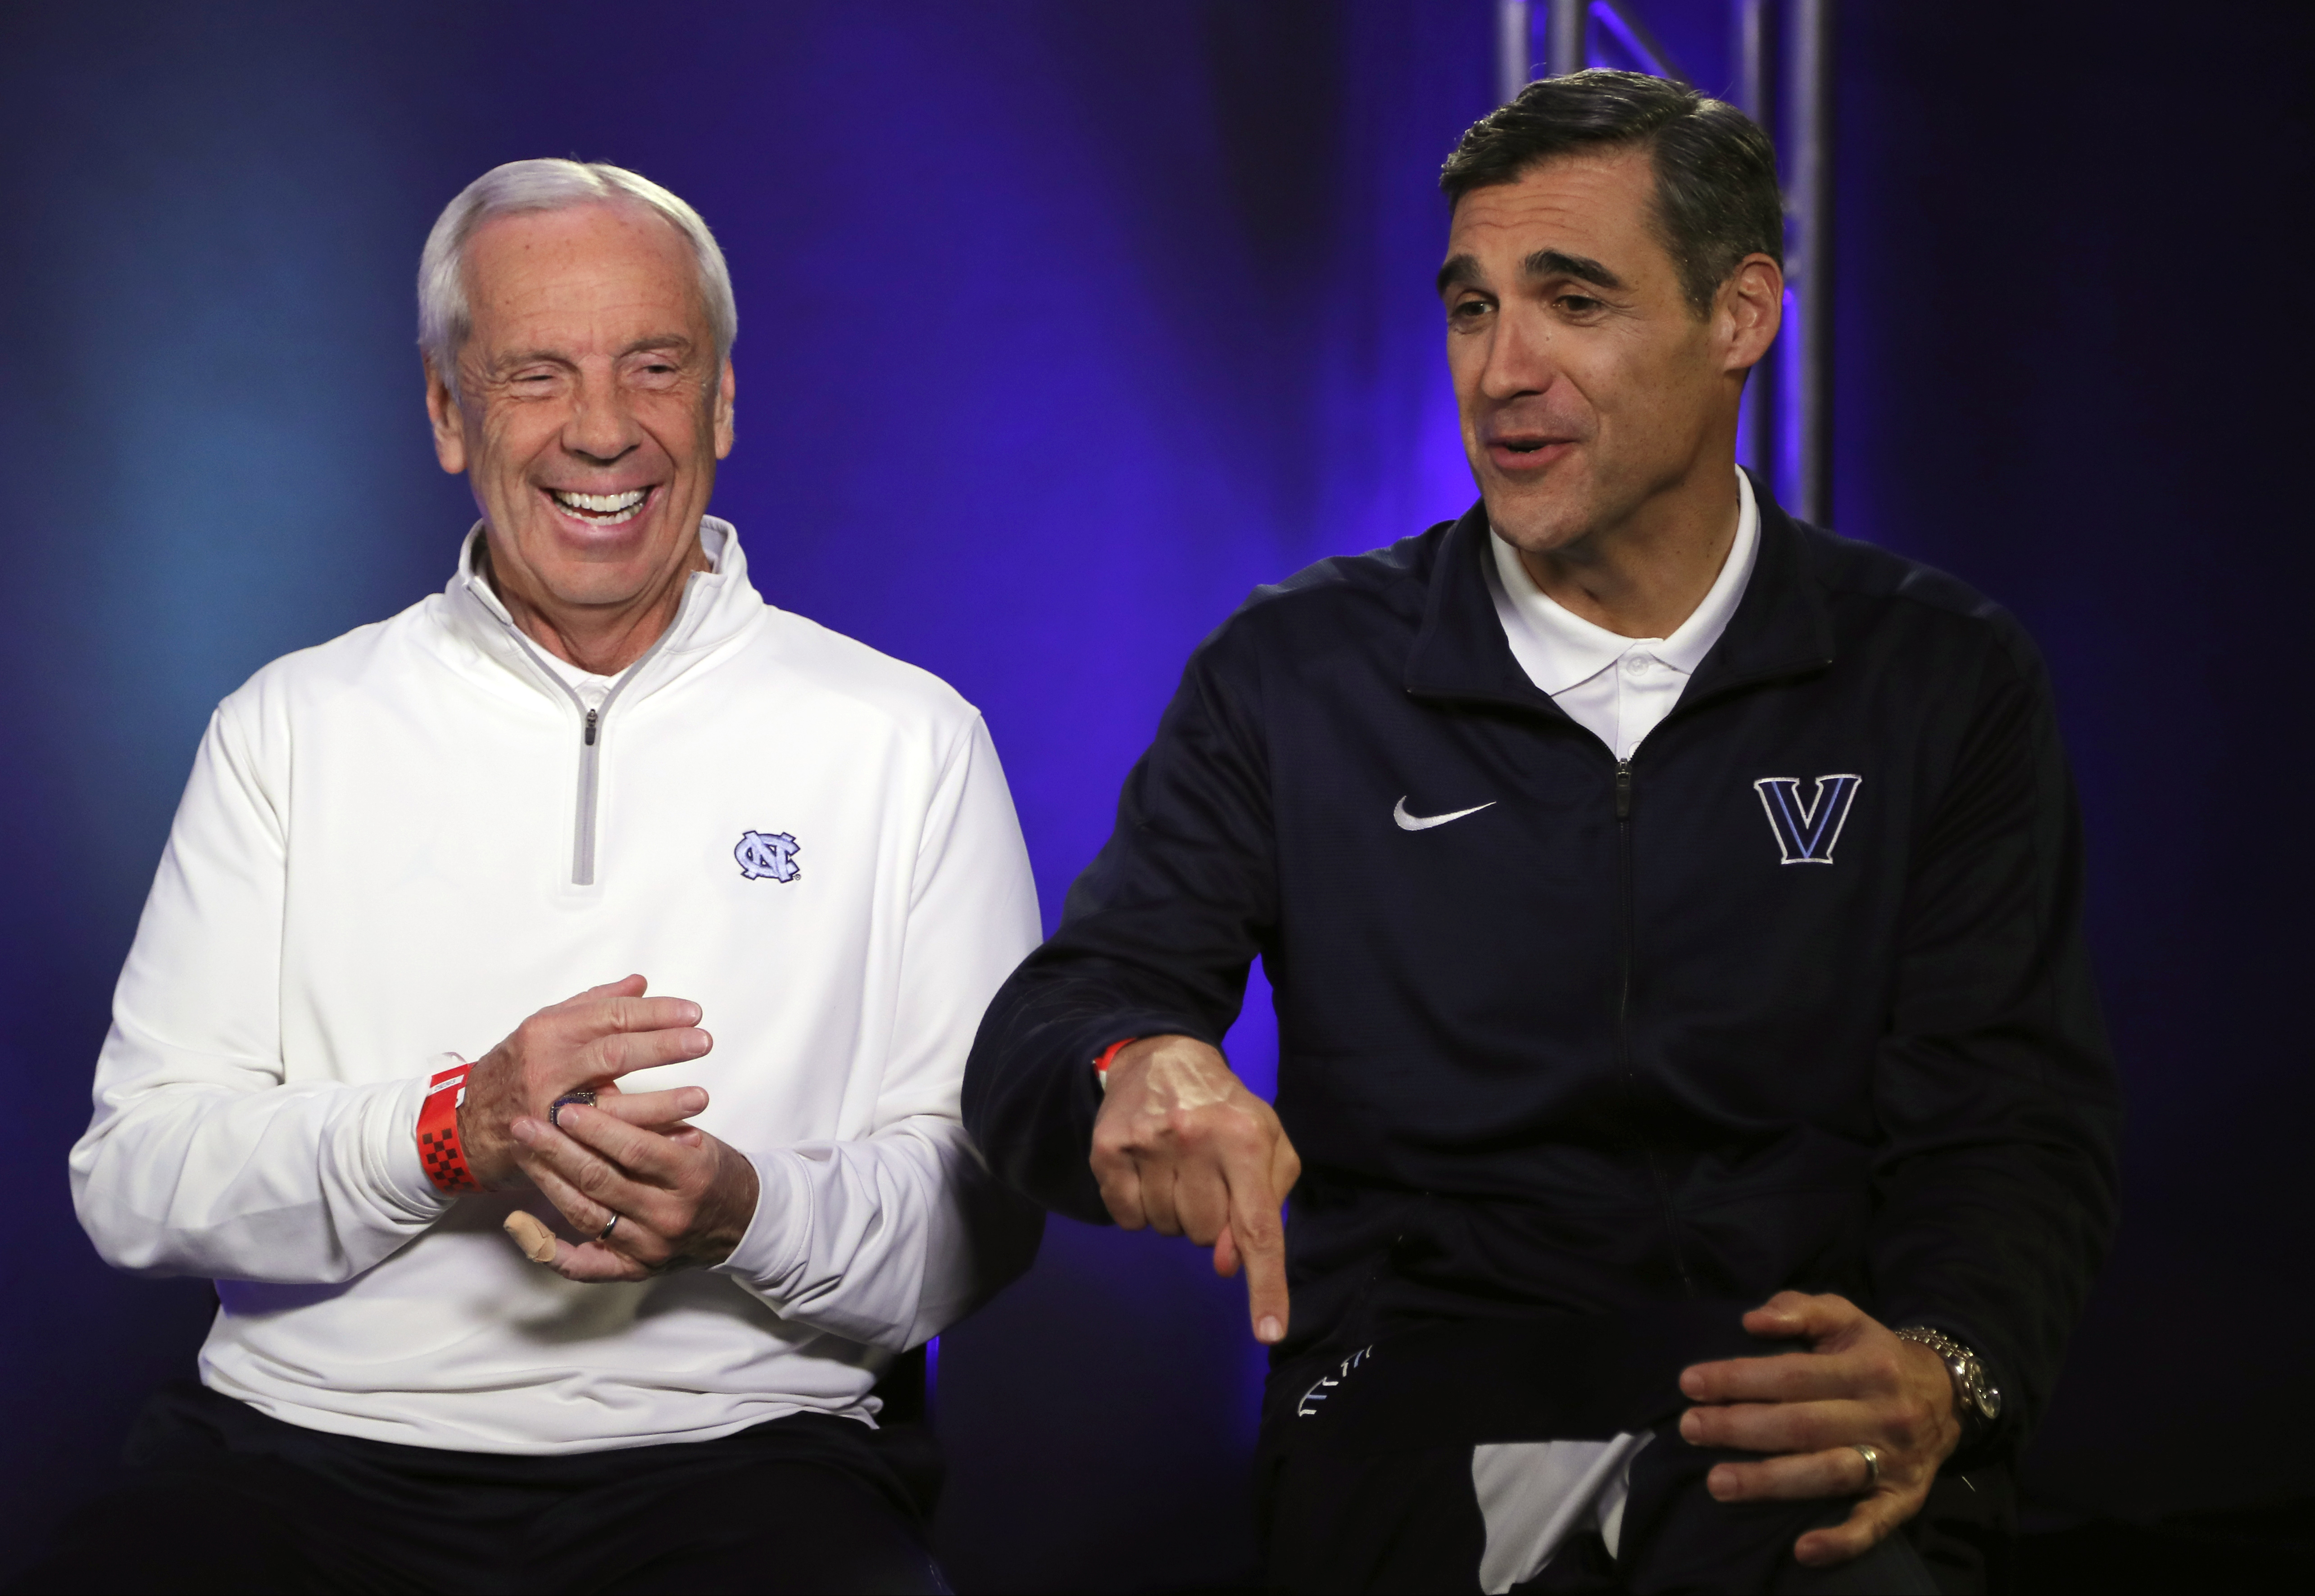 North Carolina head coach Roy Williams and Villanova head coach Jay Wright laugh during a CBS Sports Network interview for the NCAA Final Four tournament college basketball championship game Sunday, April 3, 2016, in Houston. Villanova and North Carolina